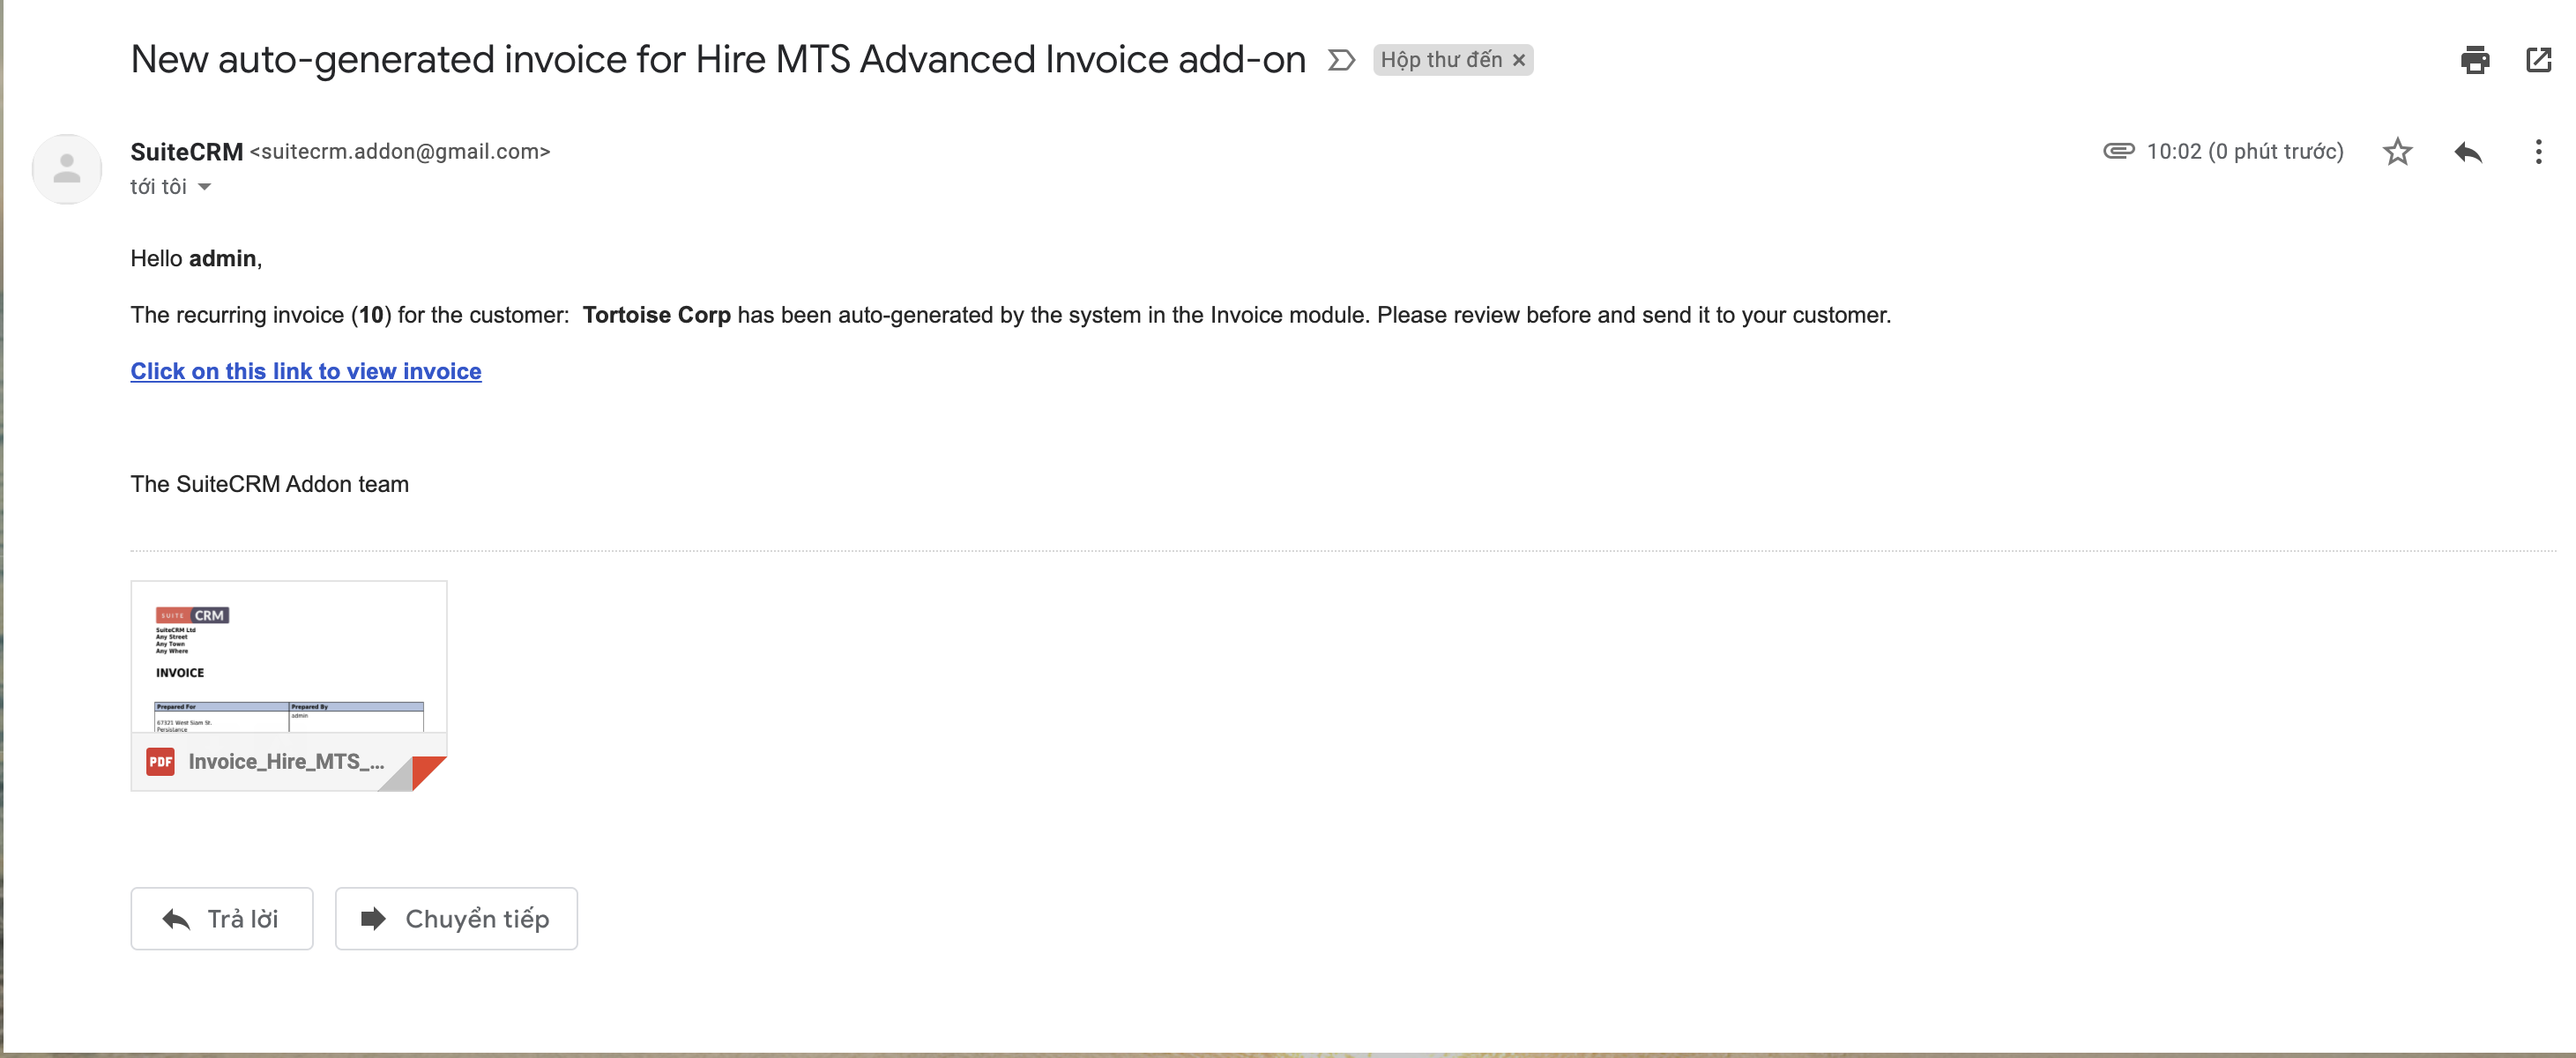 MTS Advanced Invoice add-on for SuiteCRM auto-generated